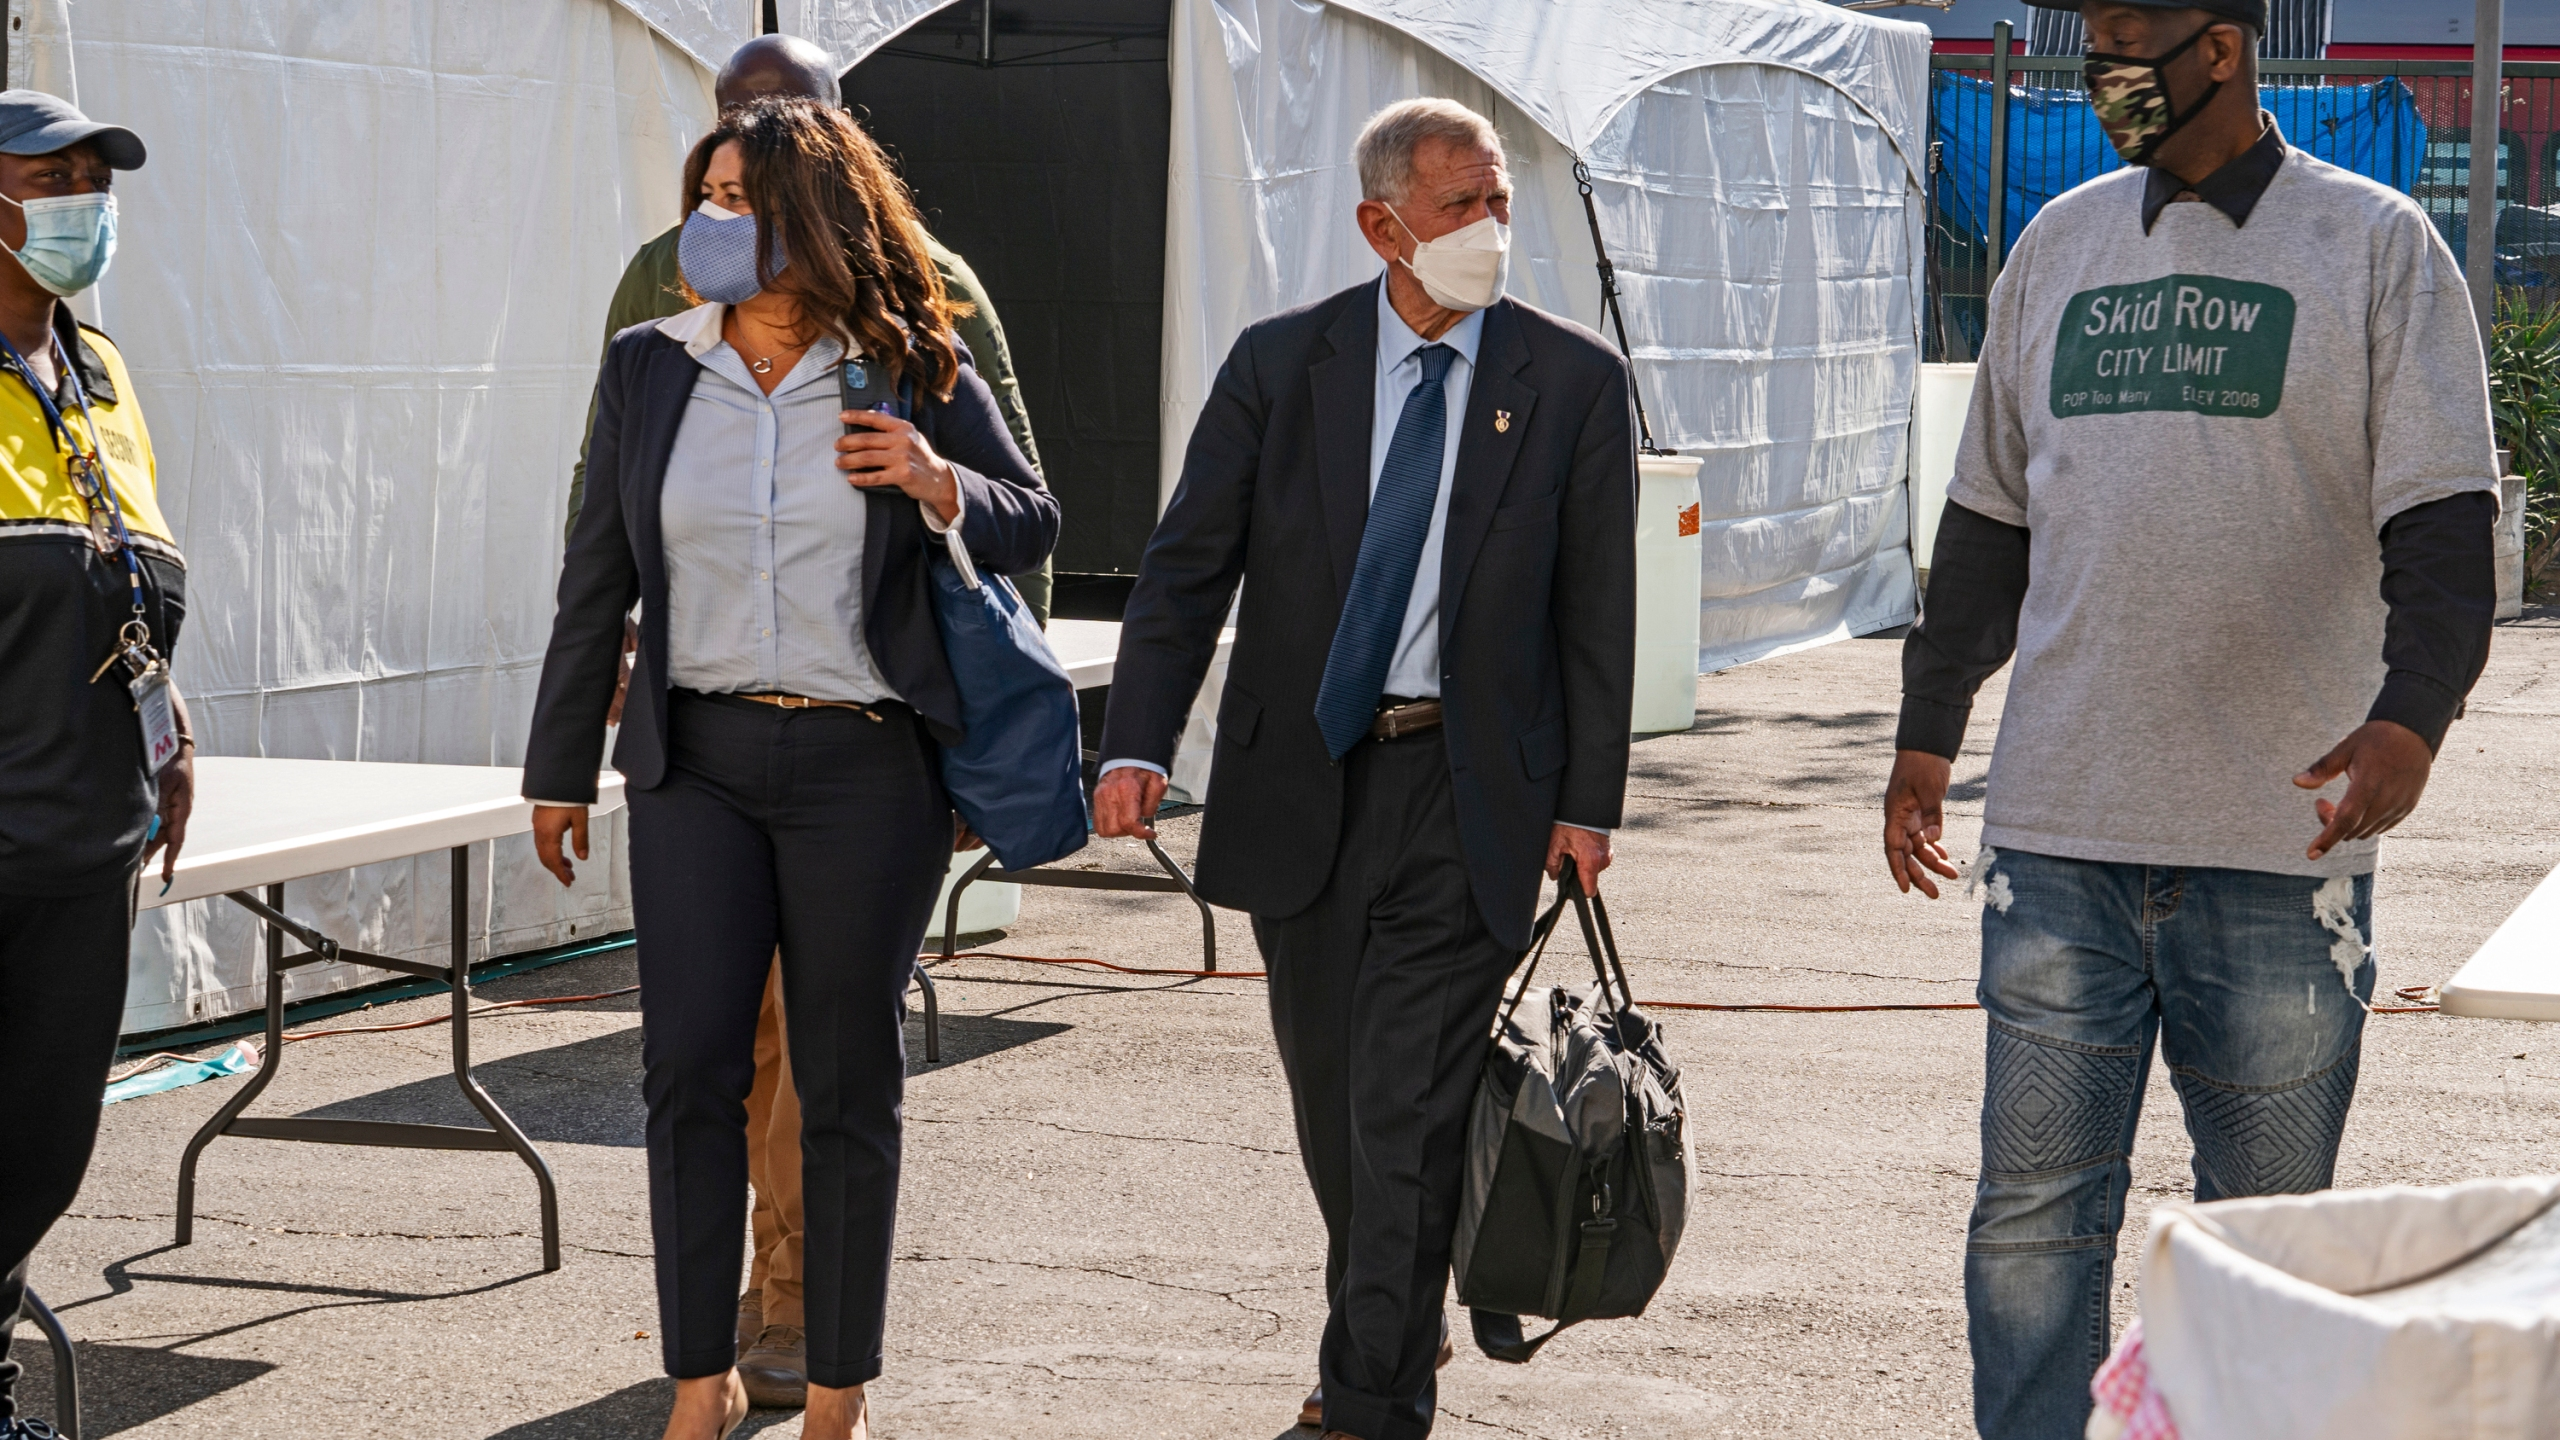 In this Feb. 4, 2021, file photo, Jeff Page, a homelessness activist, walks with U.S. District Court Judge David O. Carter, middle, and Michele Martinez, special master on the issues of homelessness, after a court hearing at Downtown Women's Center in Los Angeles. (AP Photo/Damian Dovarganes, File)